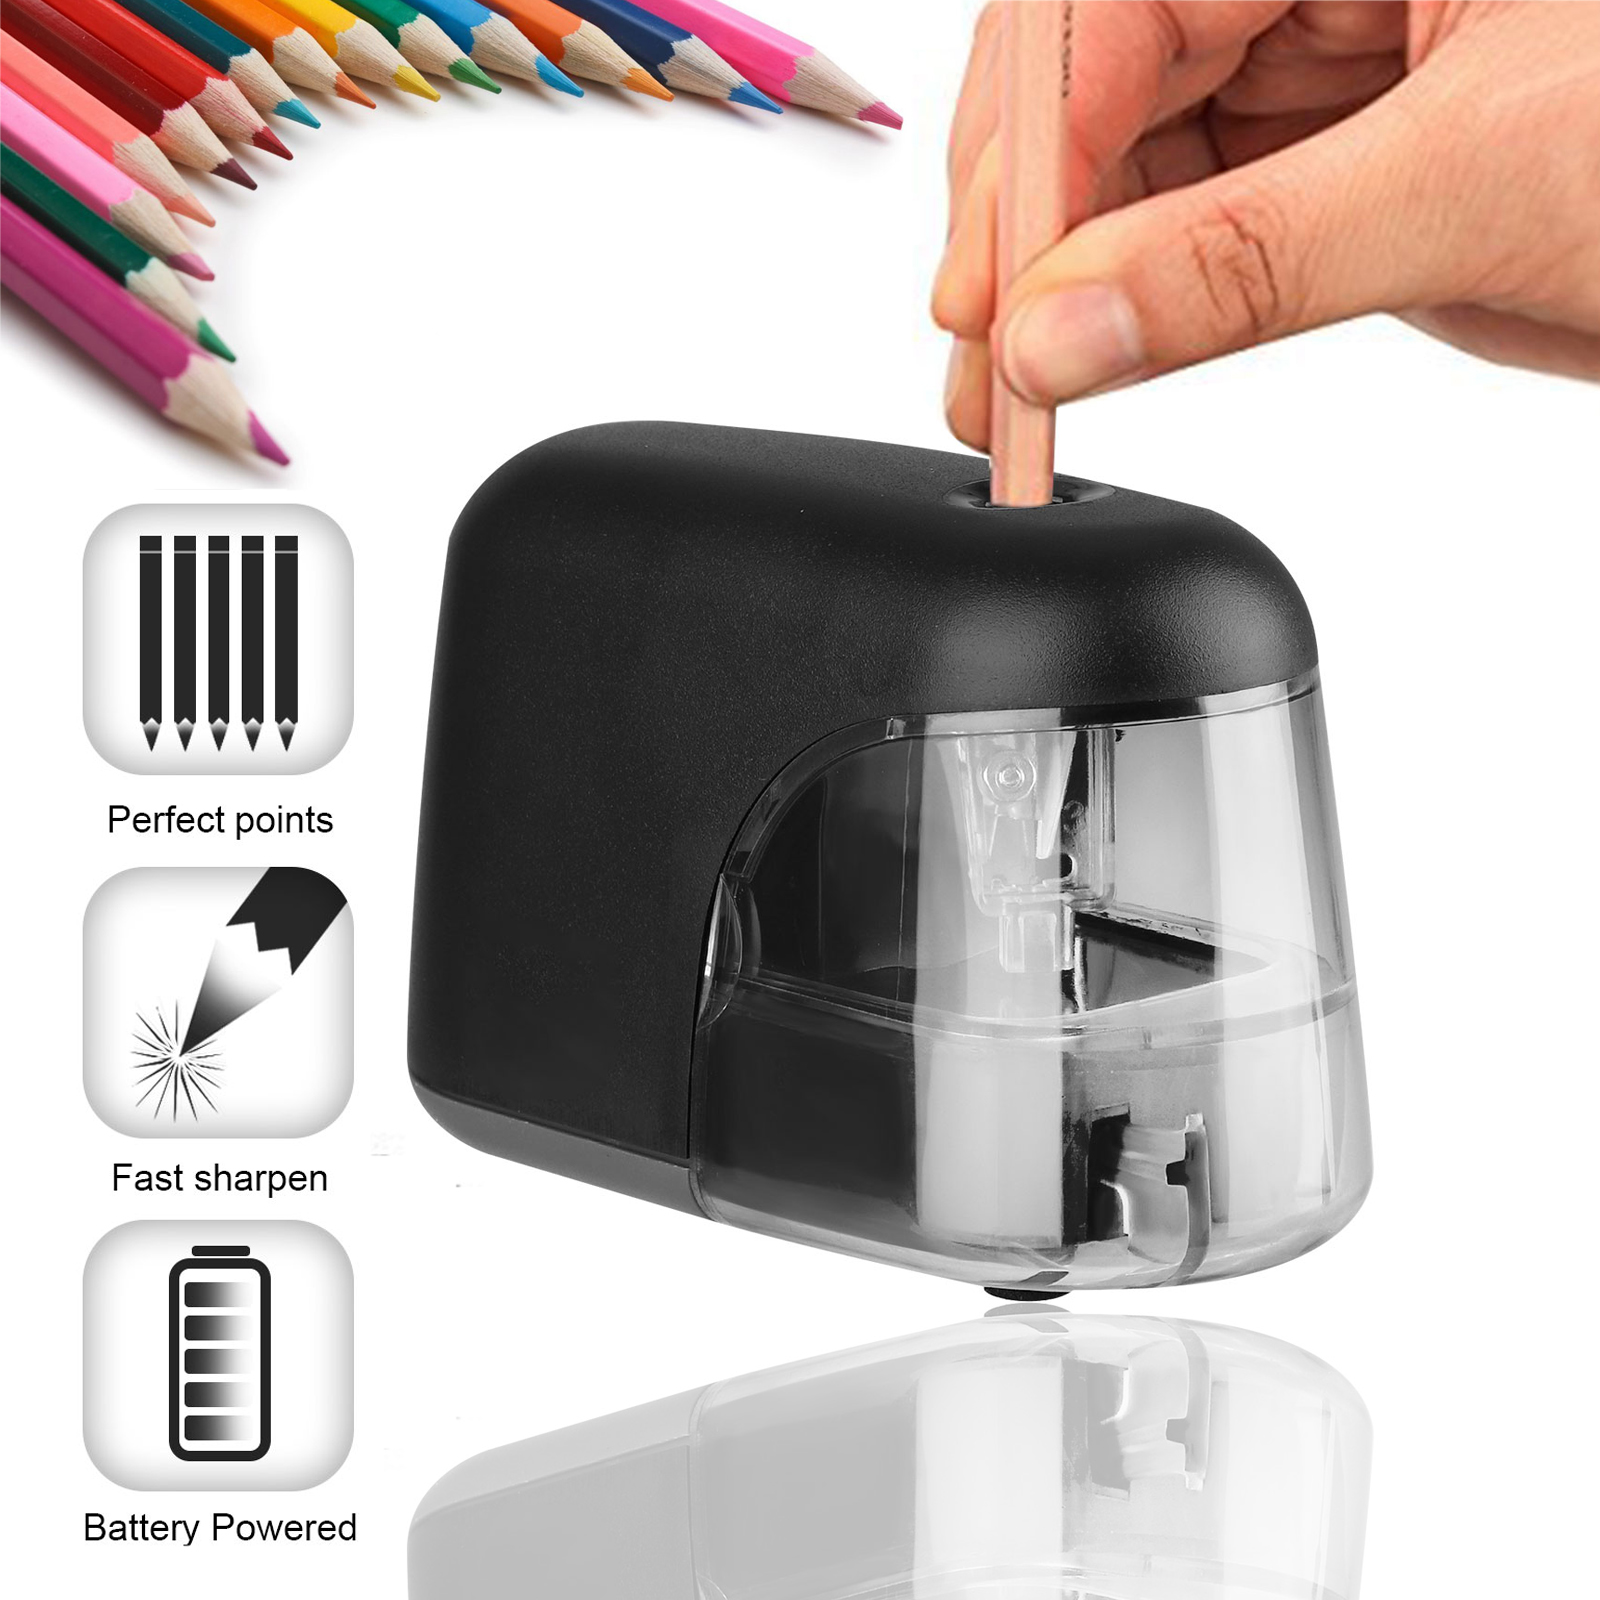 Electric Pencil Sharpener with Heavy Duty Helical Blade,Industrial Pencil Sharpener Plug in for Classroom,Office,Home,Super Fast,Suitable for NO 2//Colored Pencils,Powerful Motor